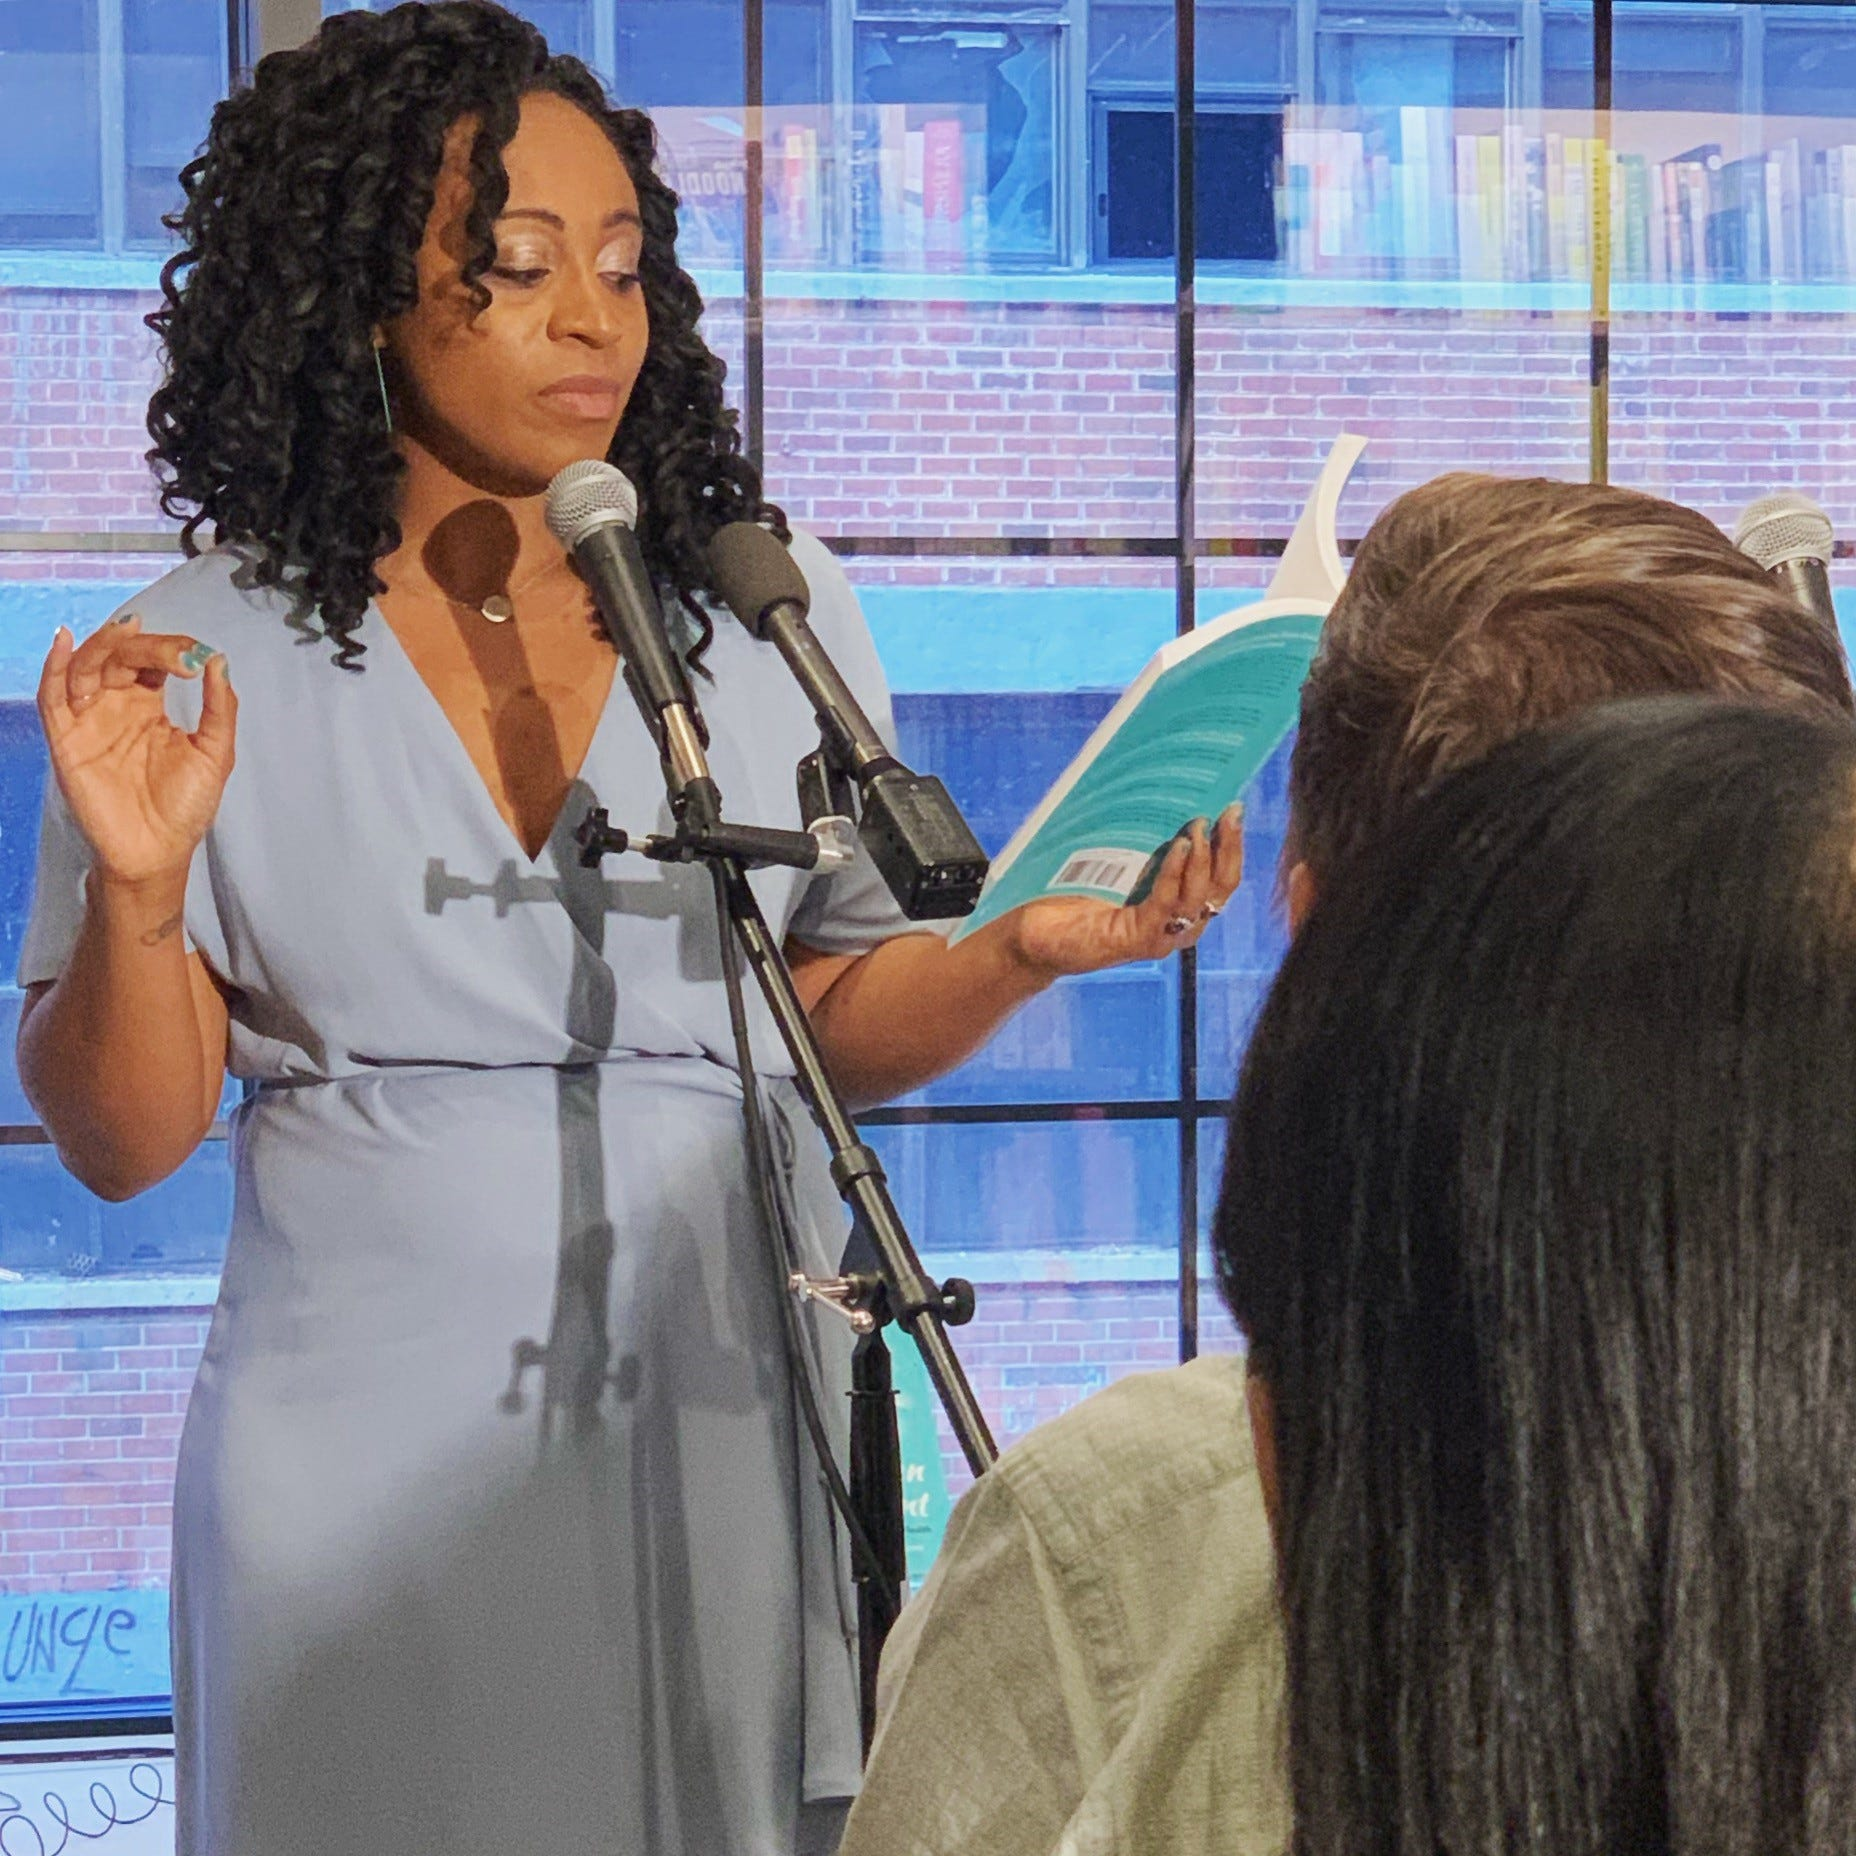 """Kelechi Ubozoh reads from her book """"We've Been Too Patient: Voices From Radical Mental Health"""" at a 2019 event at McNally Jackson Independent Booksellers in Brooklyn."""